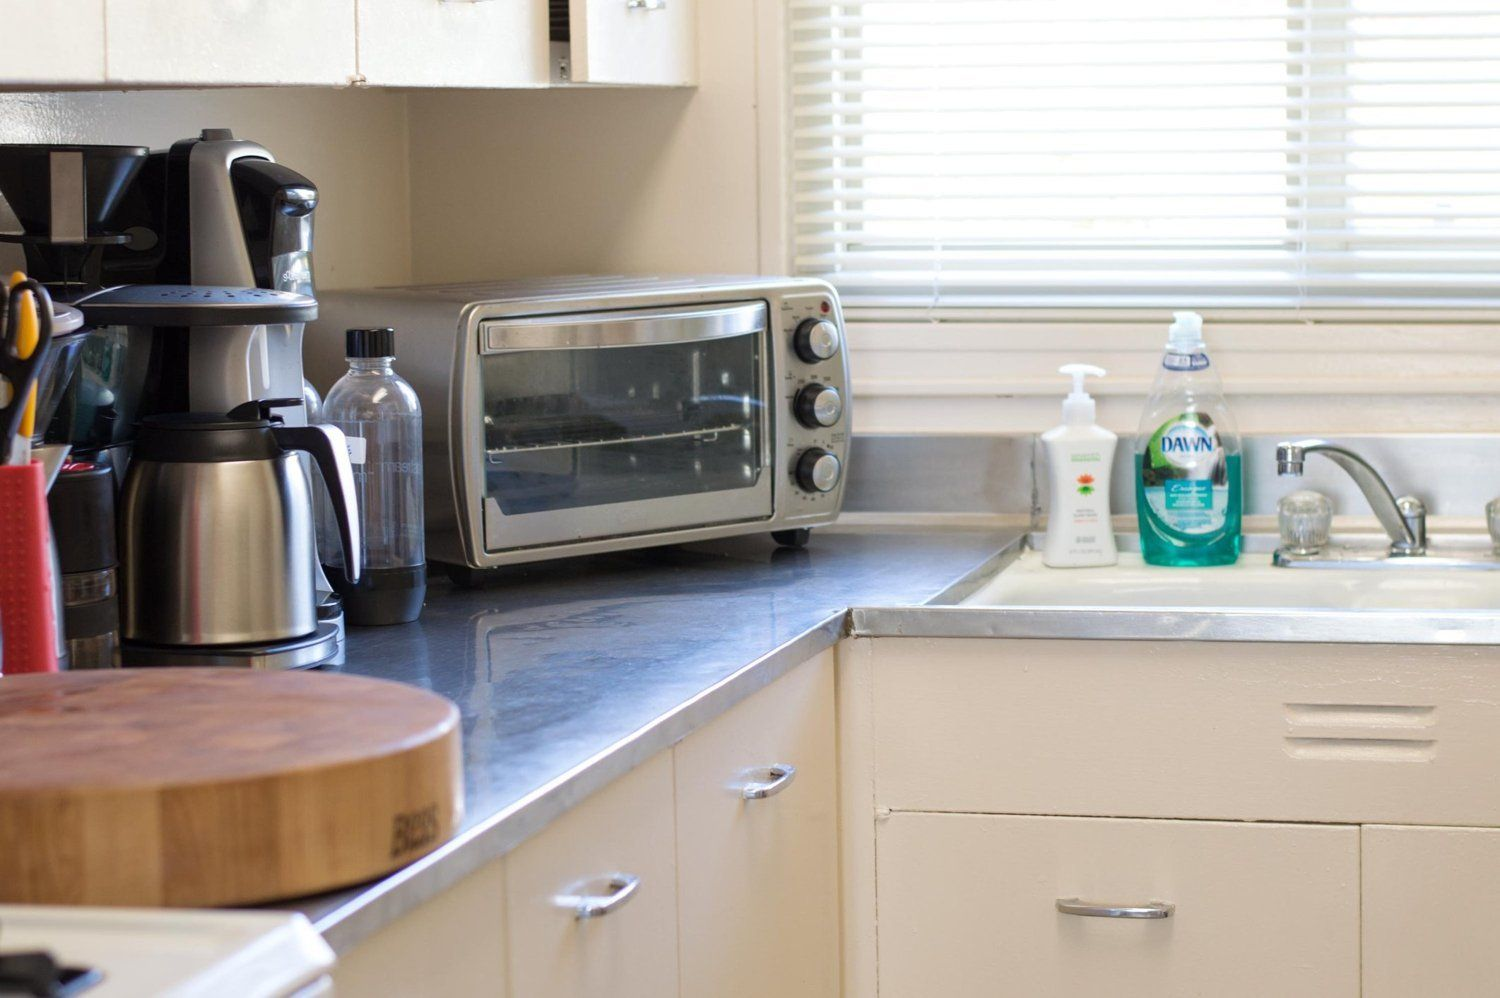 How To Clean Stainless Steel Countertops A Shiny Streak Free